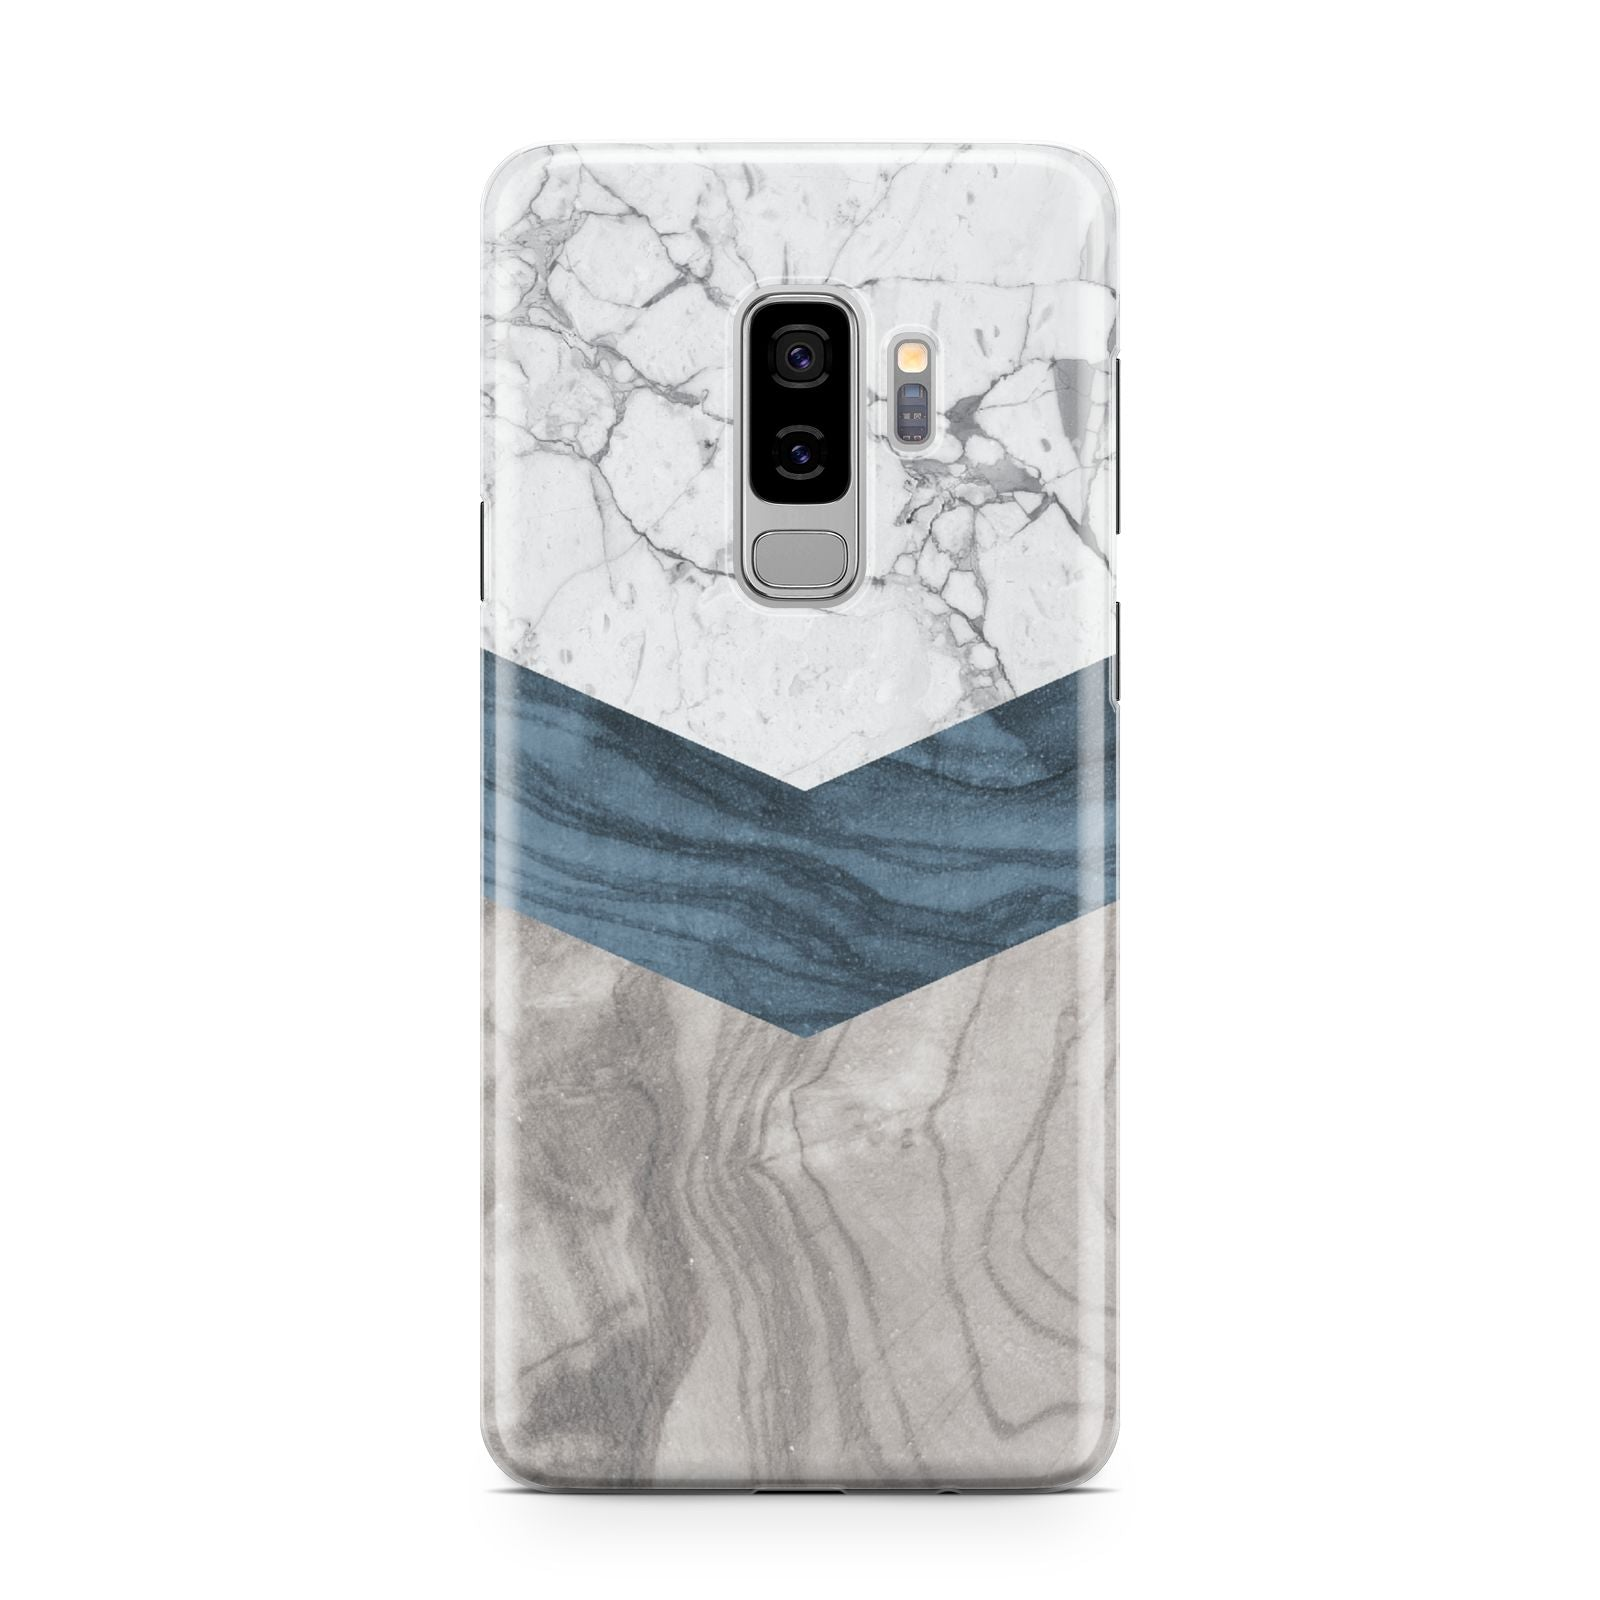 Marble Wood Geometric 8 Samsung Galaxy S9 Plus Case on Silver phone